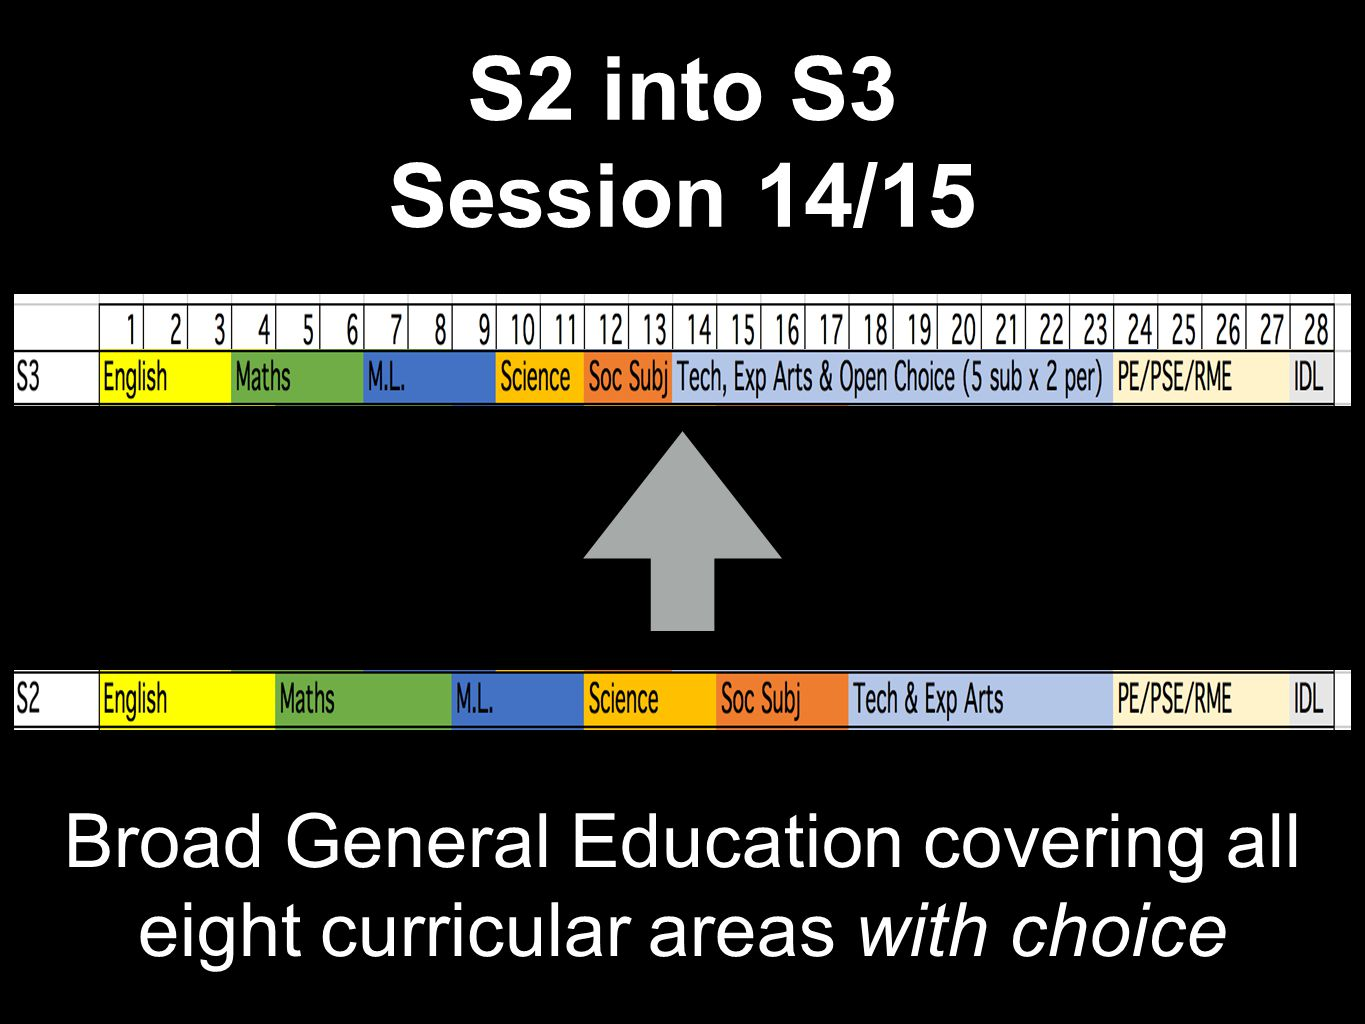 S2 into S3 Session 14/15 Broad General Education covering all eight curricular areas with choice